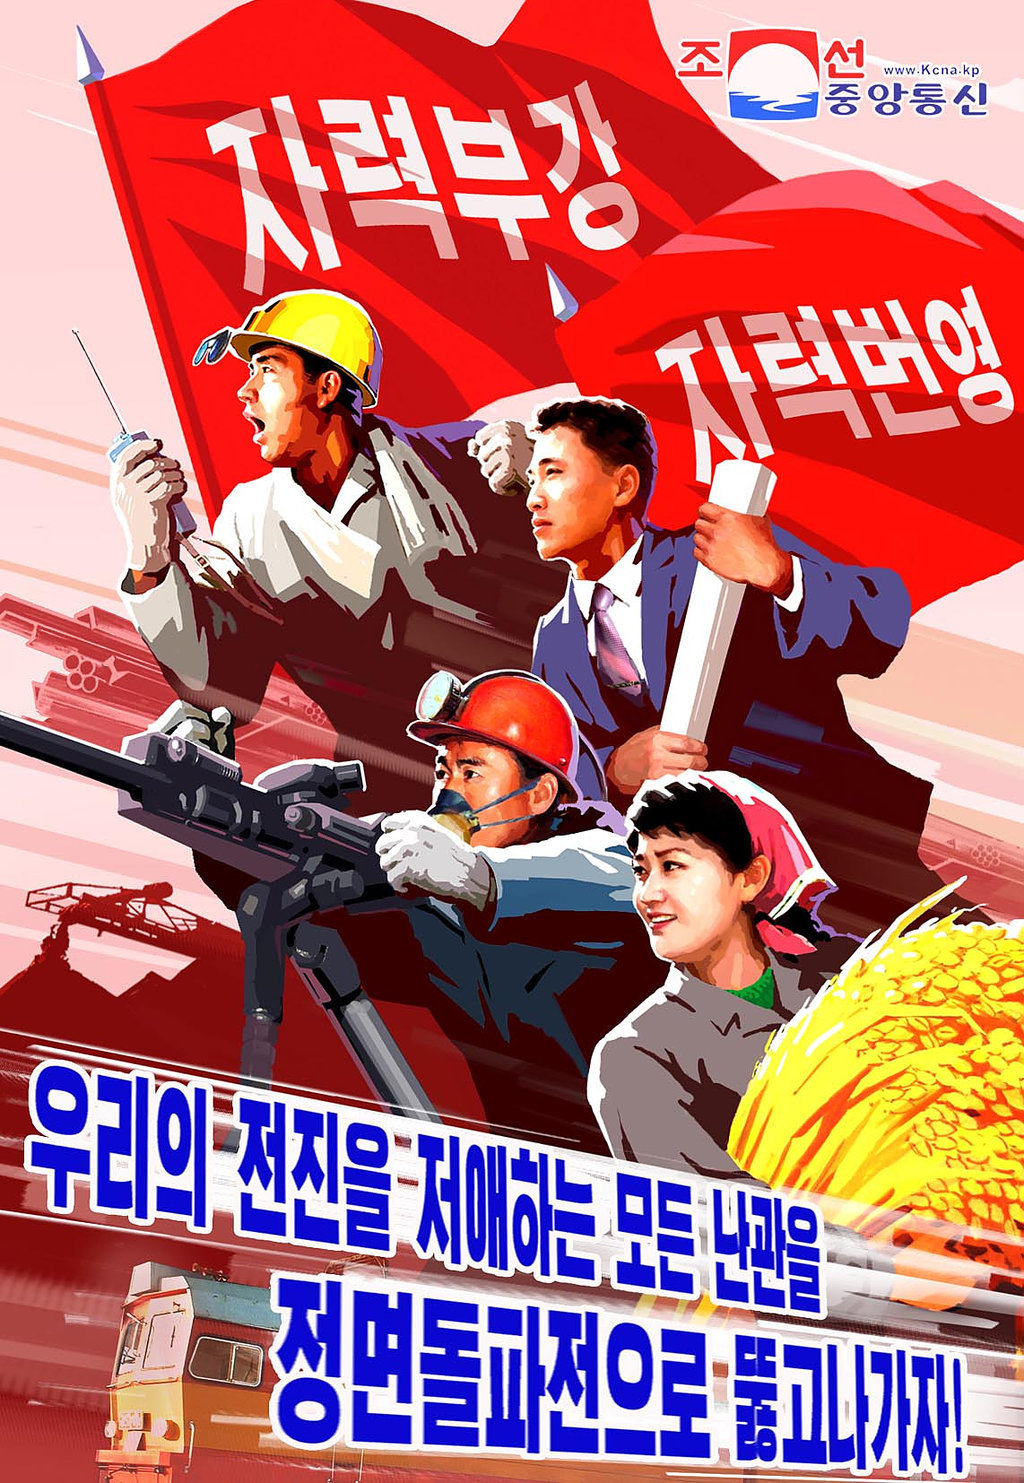 One of the new propaganda posters highlighting the important tasks set forth at the fifth plenary meeting of the 7th Central Committee of North Korea's ruling Workers' Party early this year. (KCNA-Yonhap)